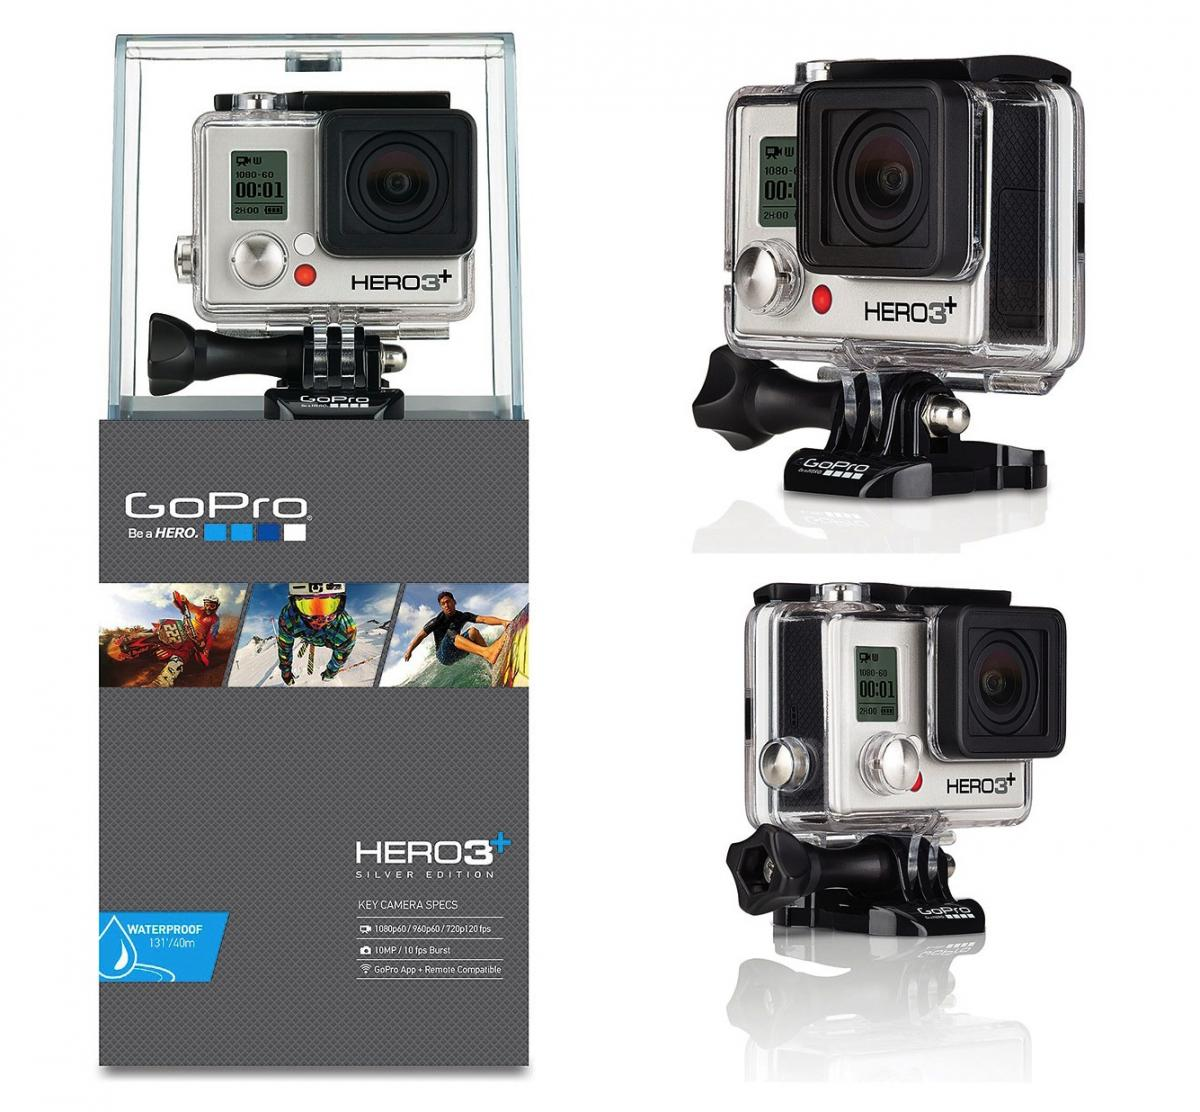 jual gopro hero 3 silver edition cameraindo tokopedia. Black Bedroom Furniture Sets. Home Design Ideas